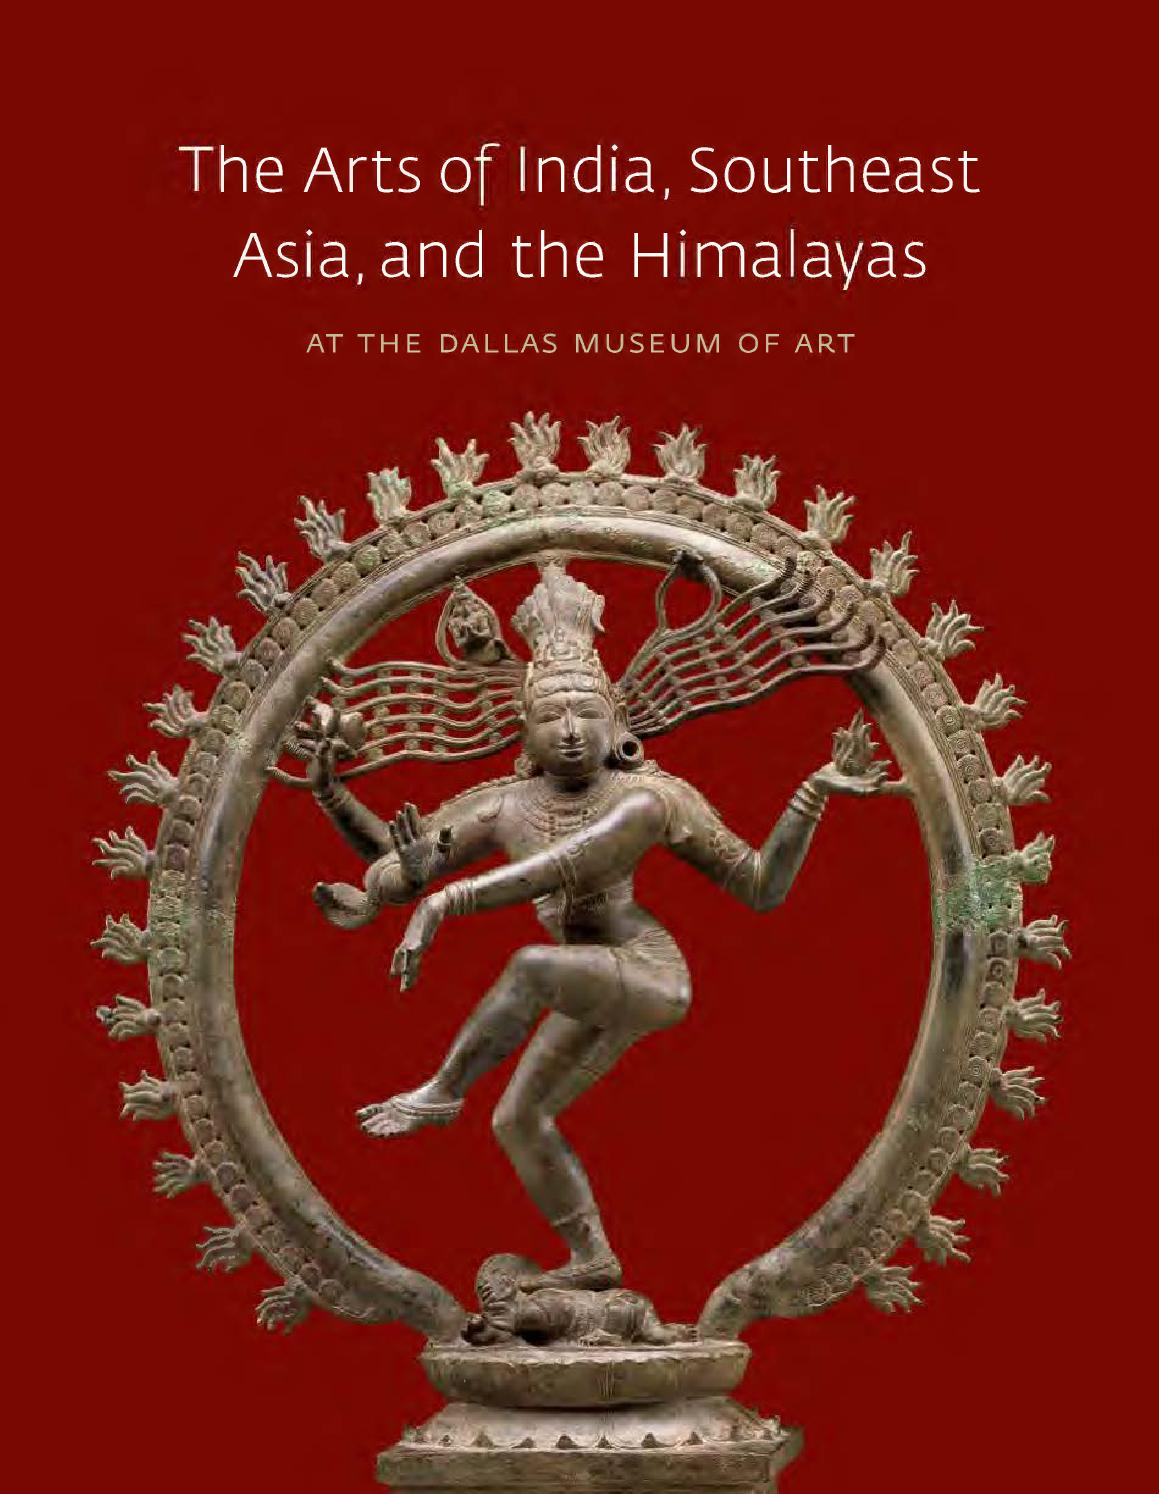 The Arts of India, Southeast Asia, and the Himalayas at the